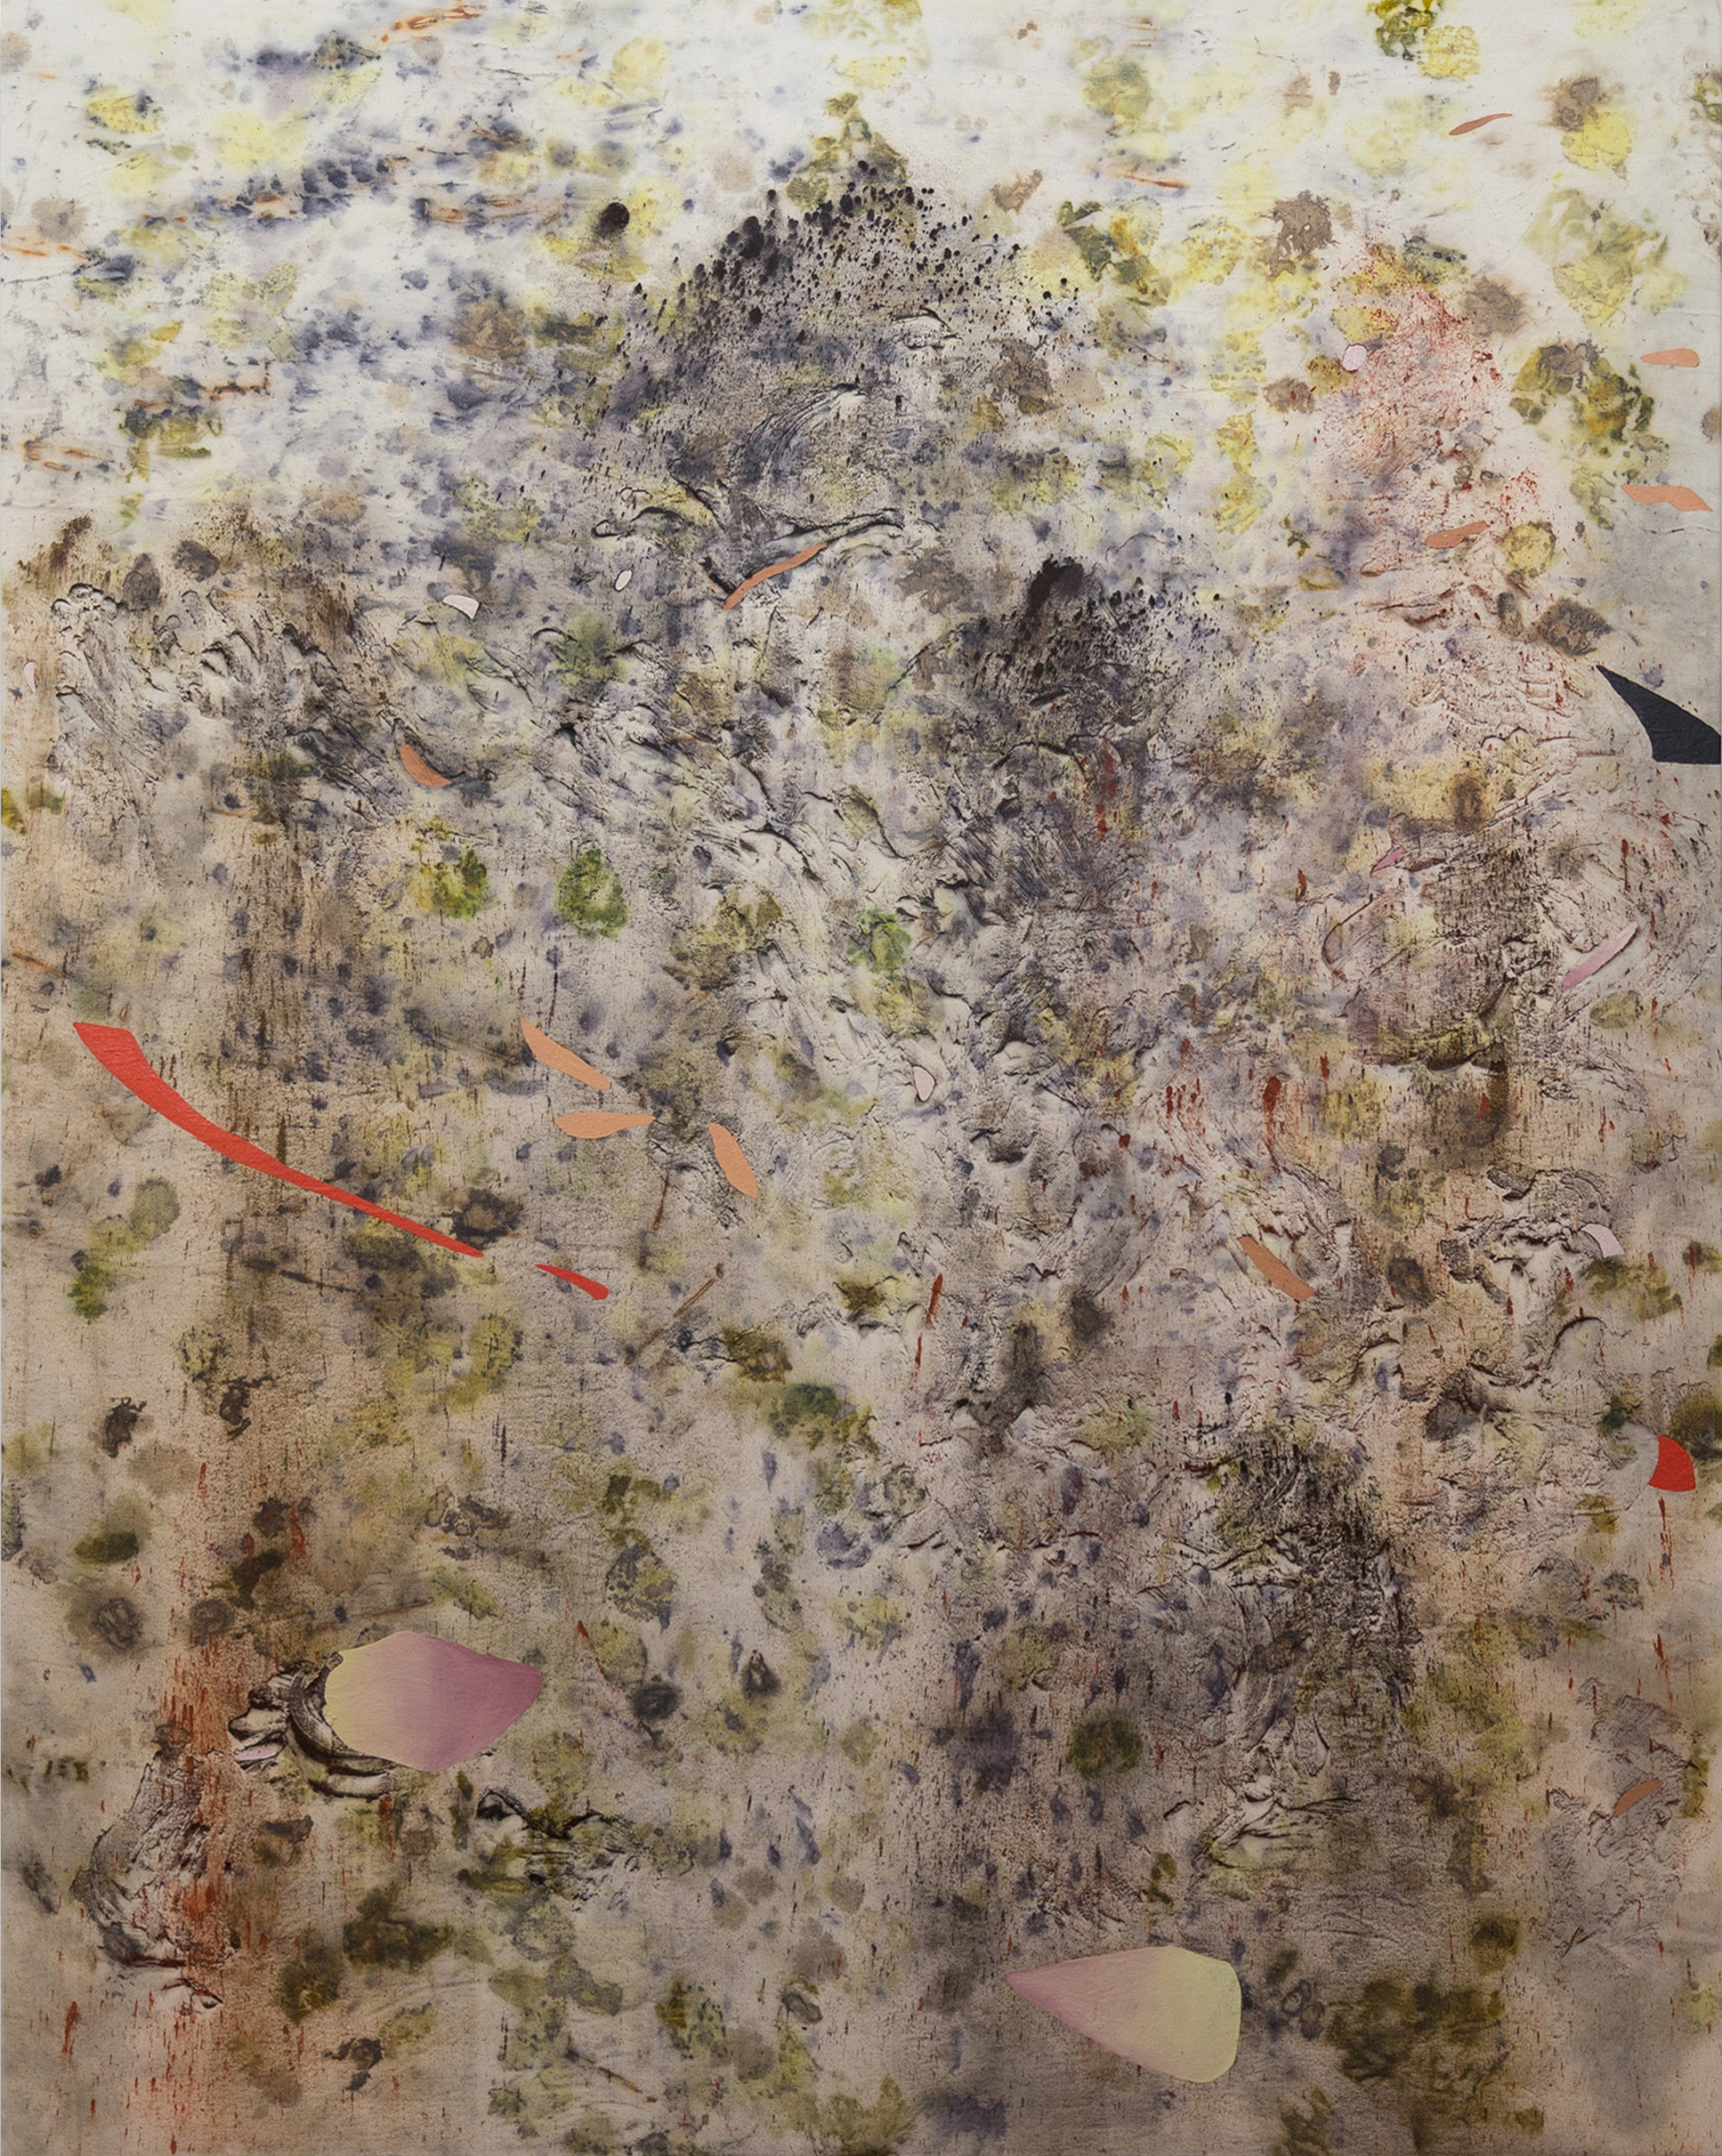 "Gillian King,  Mourning Humus  ,  2018, cold wax medium, oil, raw pigments, and various plant materials (including roses, irises ferns, onion skins, wildflowers and rust sediments) on canvas, 60"" x 48"" (152 x 122 cm)"